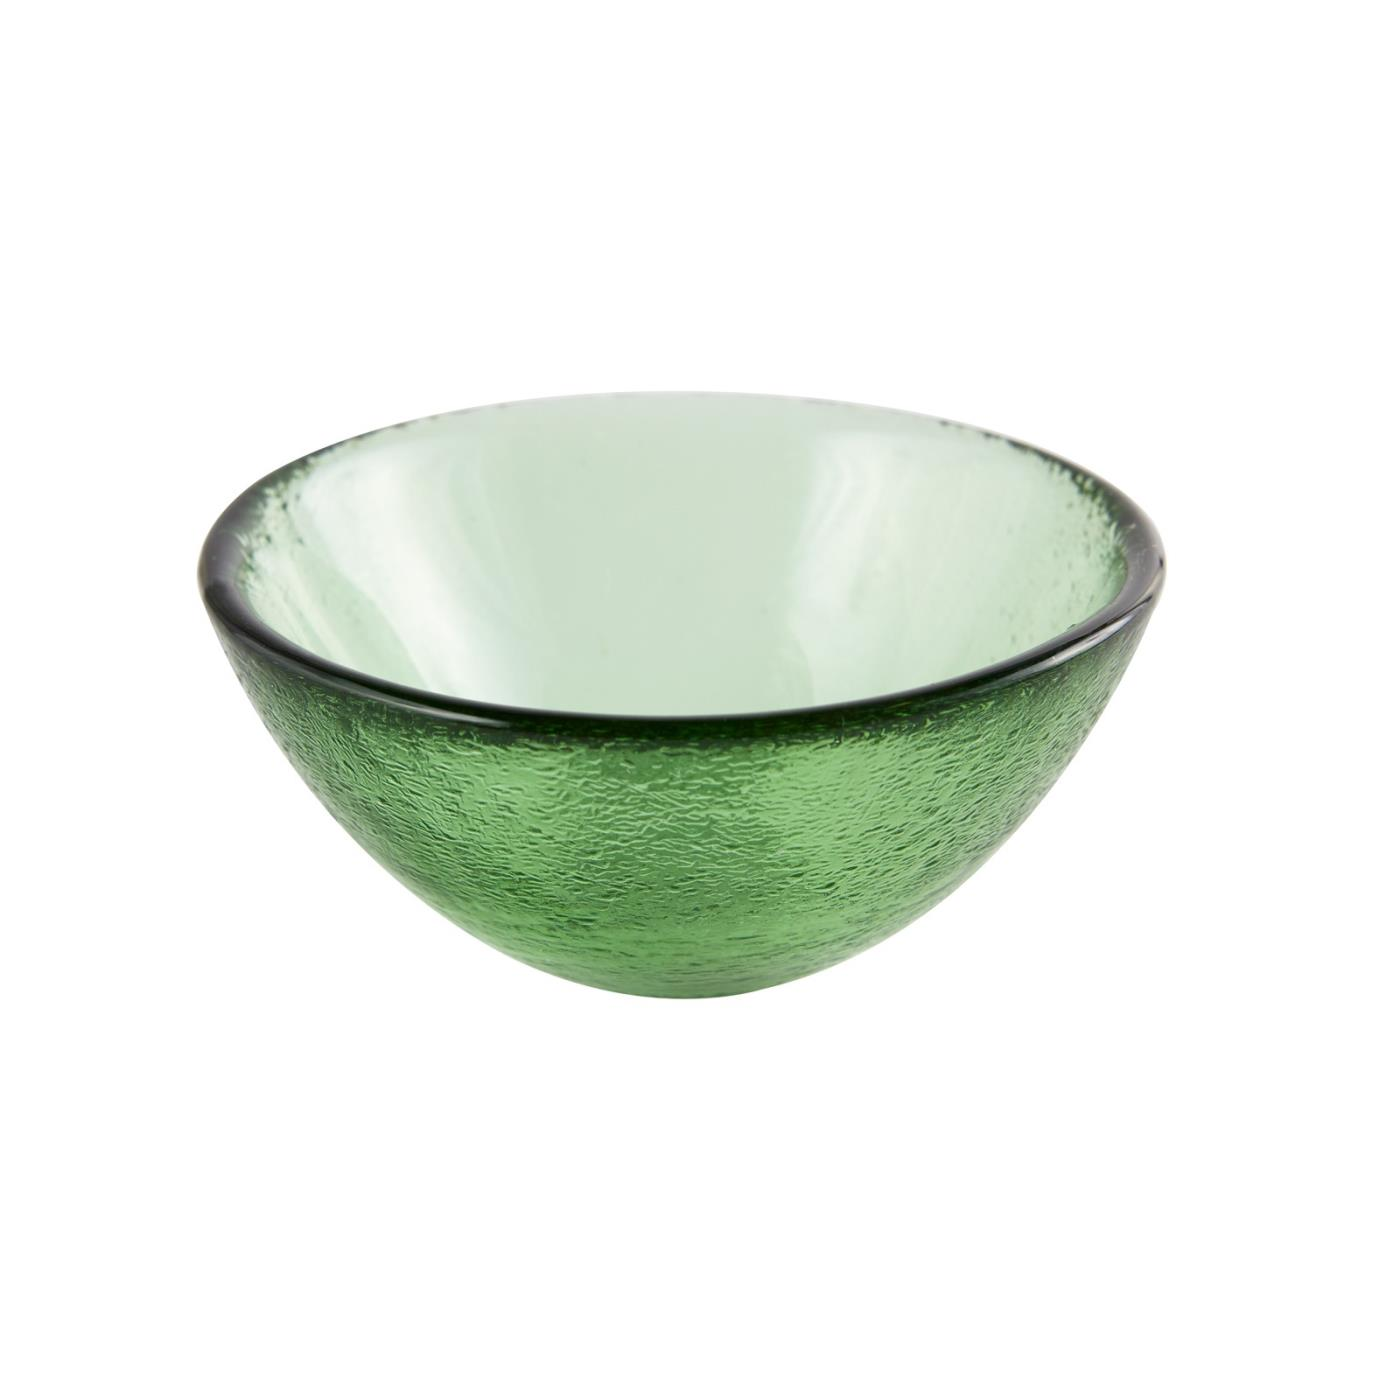 "Glass Dipping Bowl 3.25"" - Green"